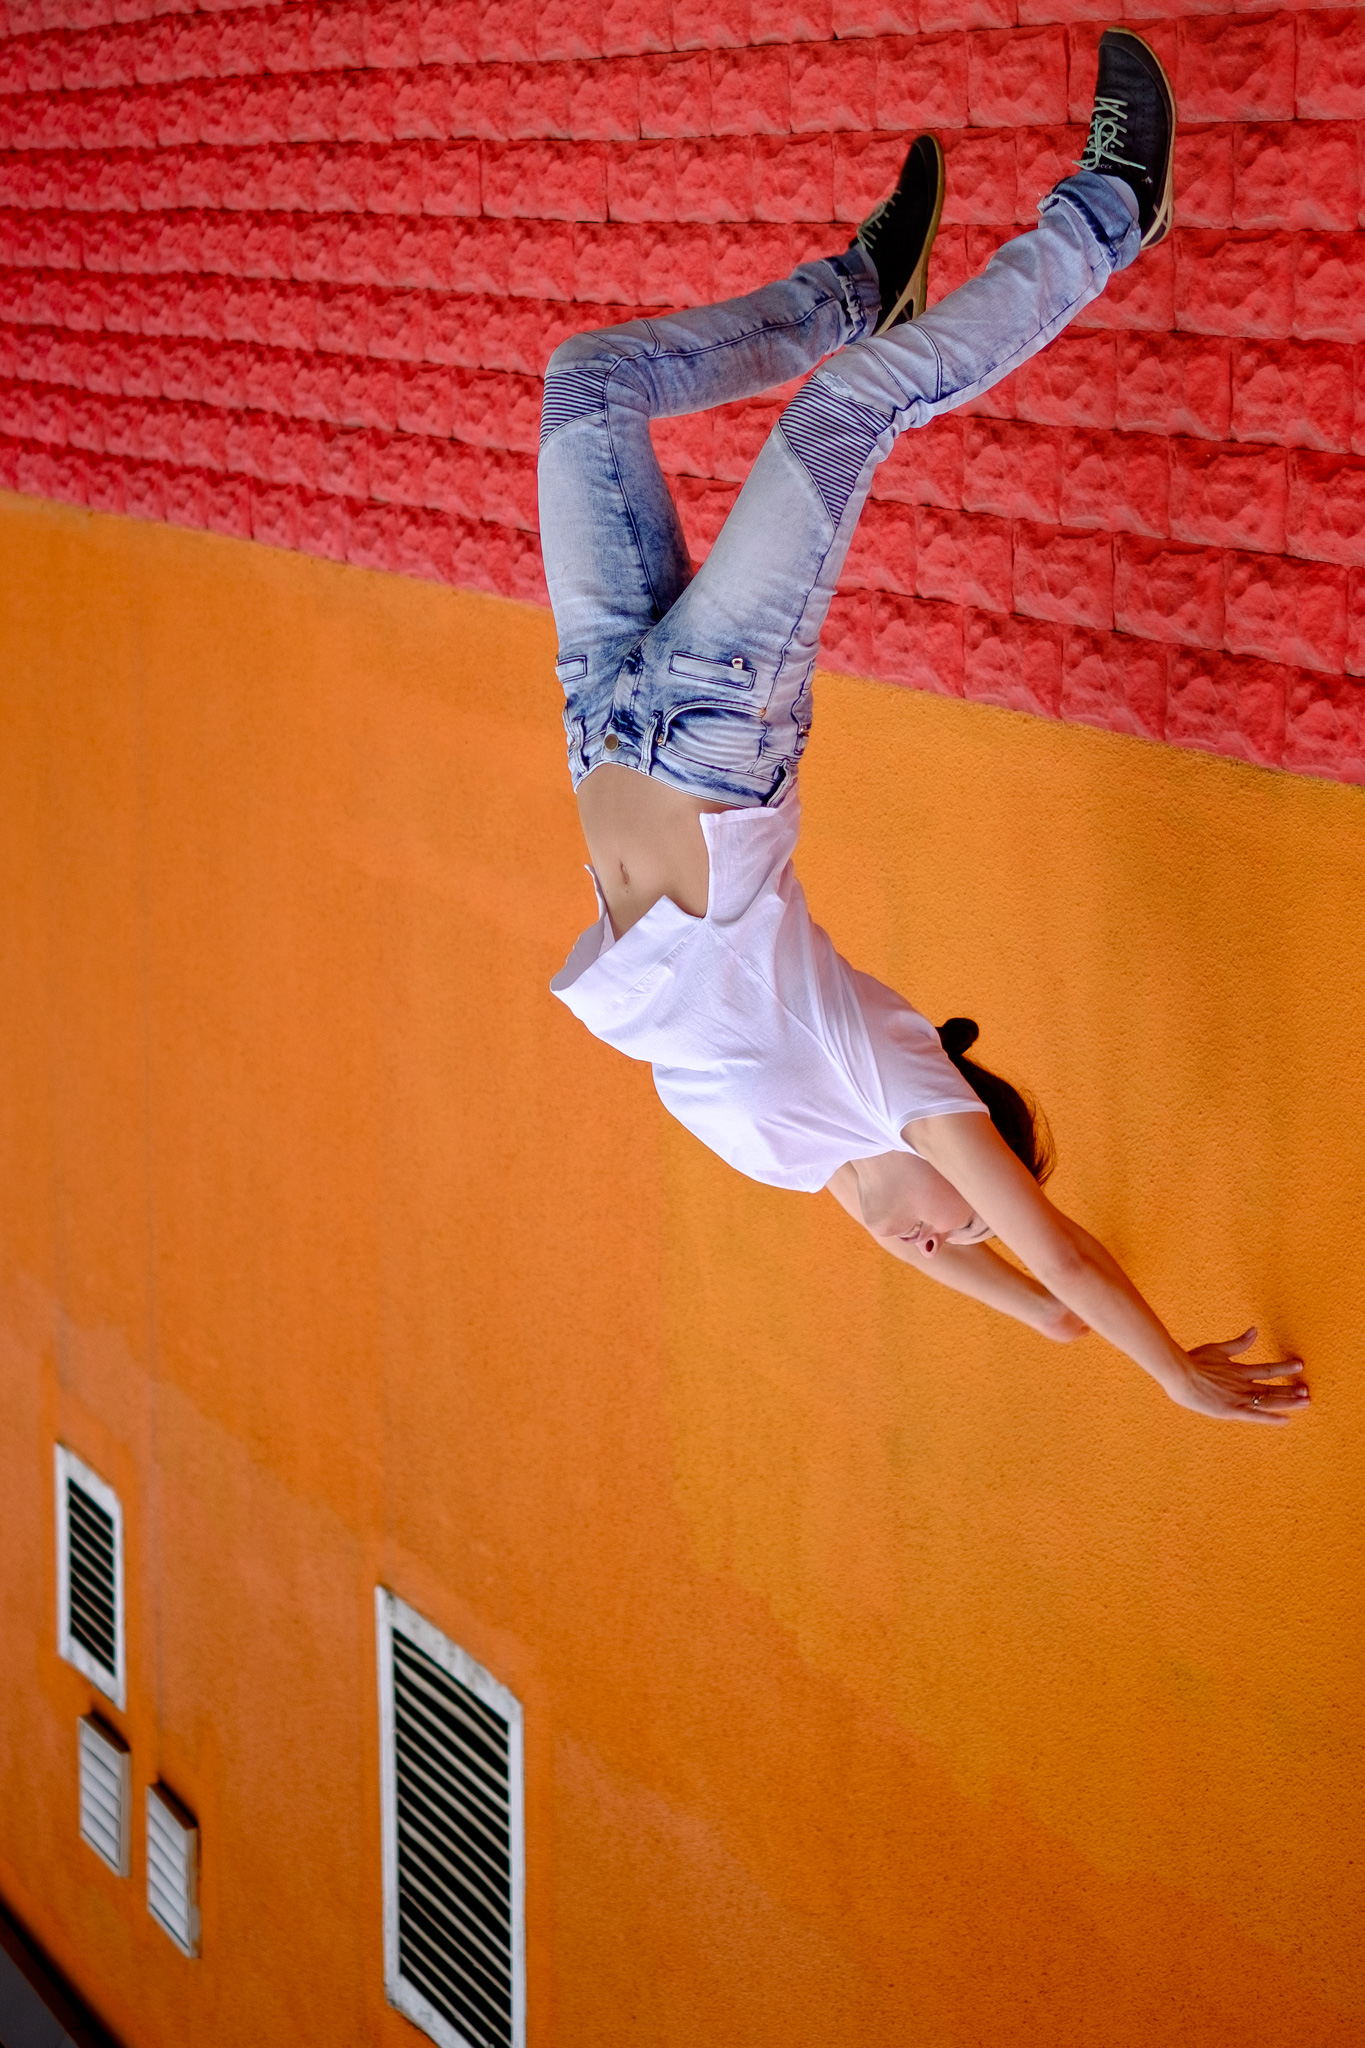 Jumping portrait upside down